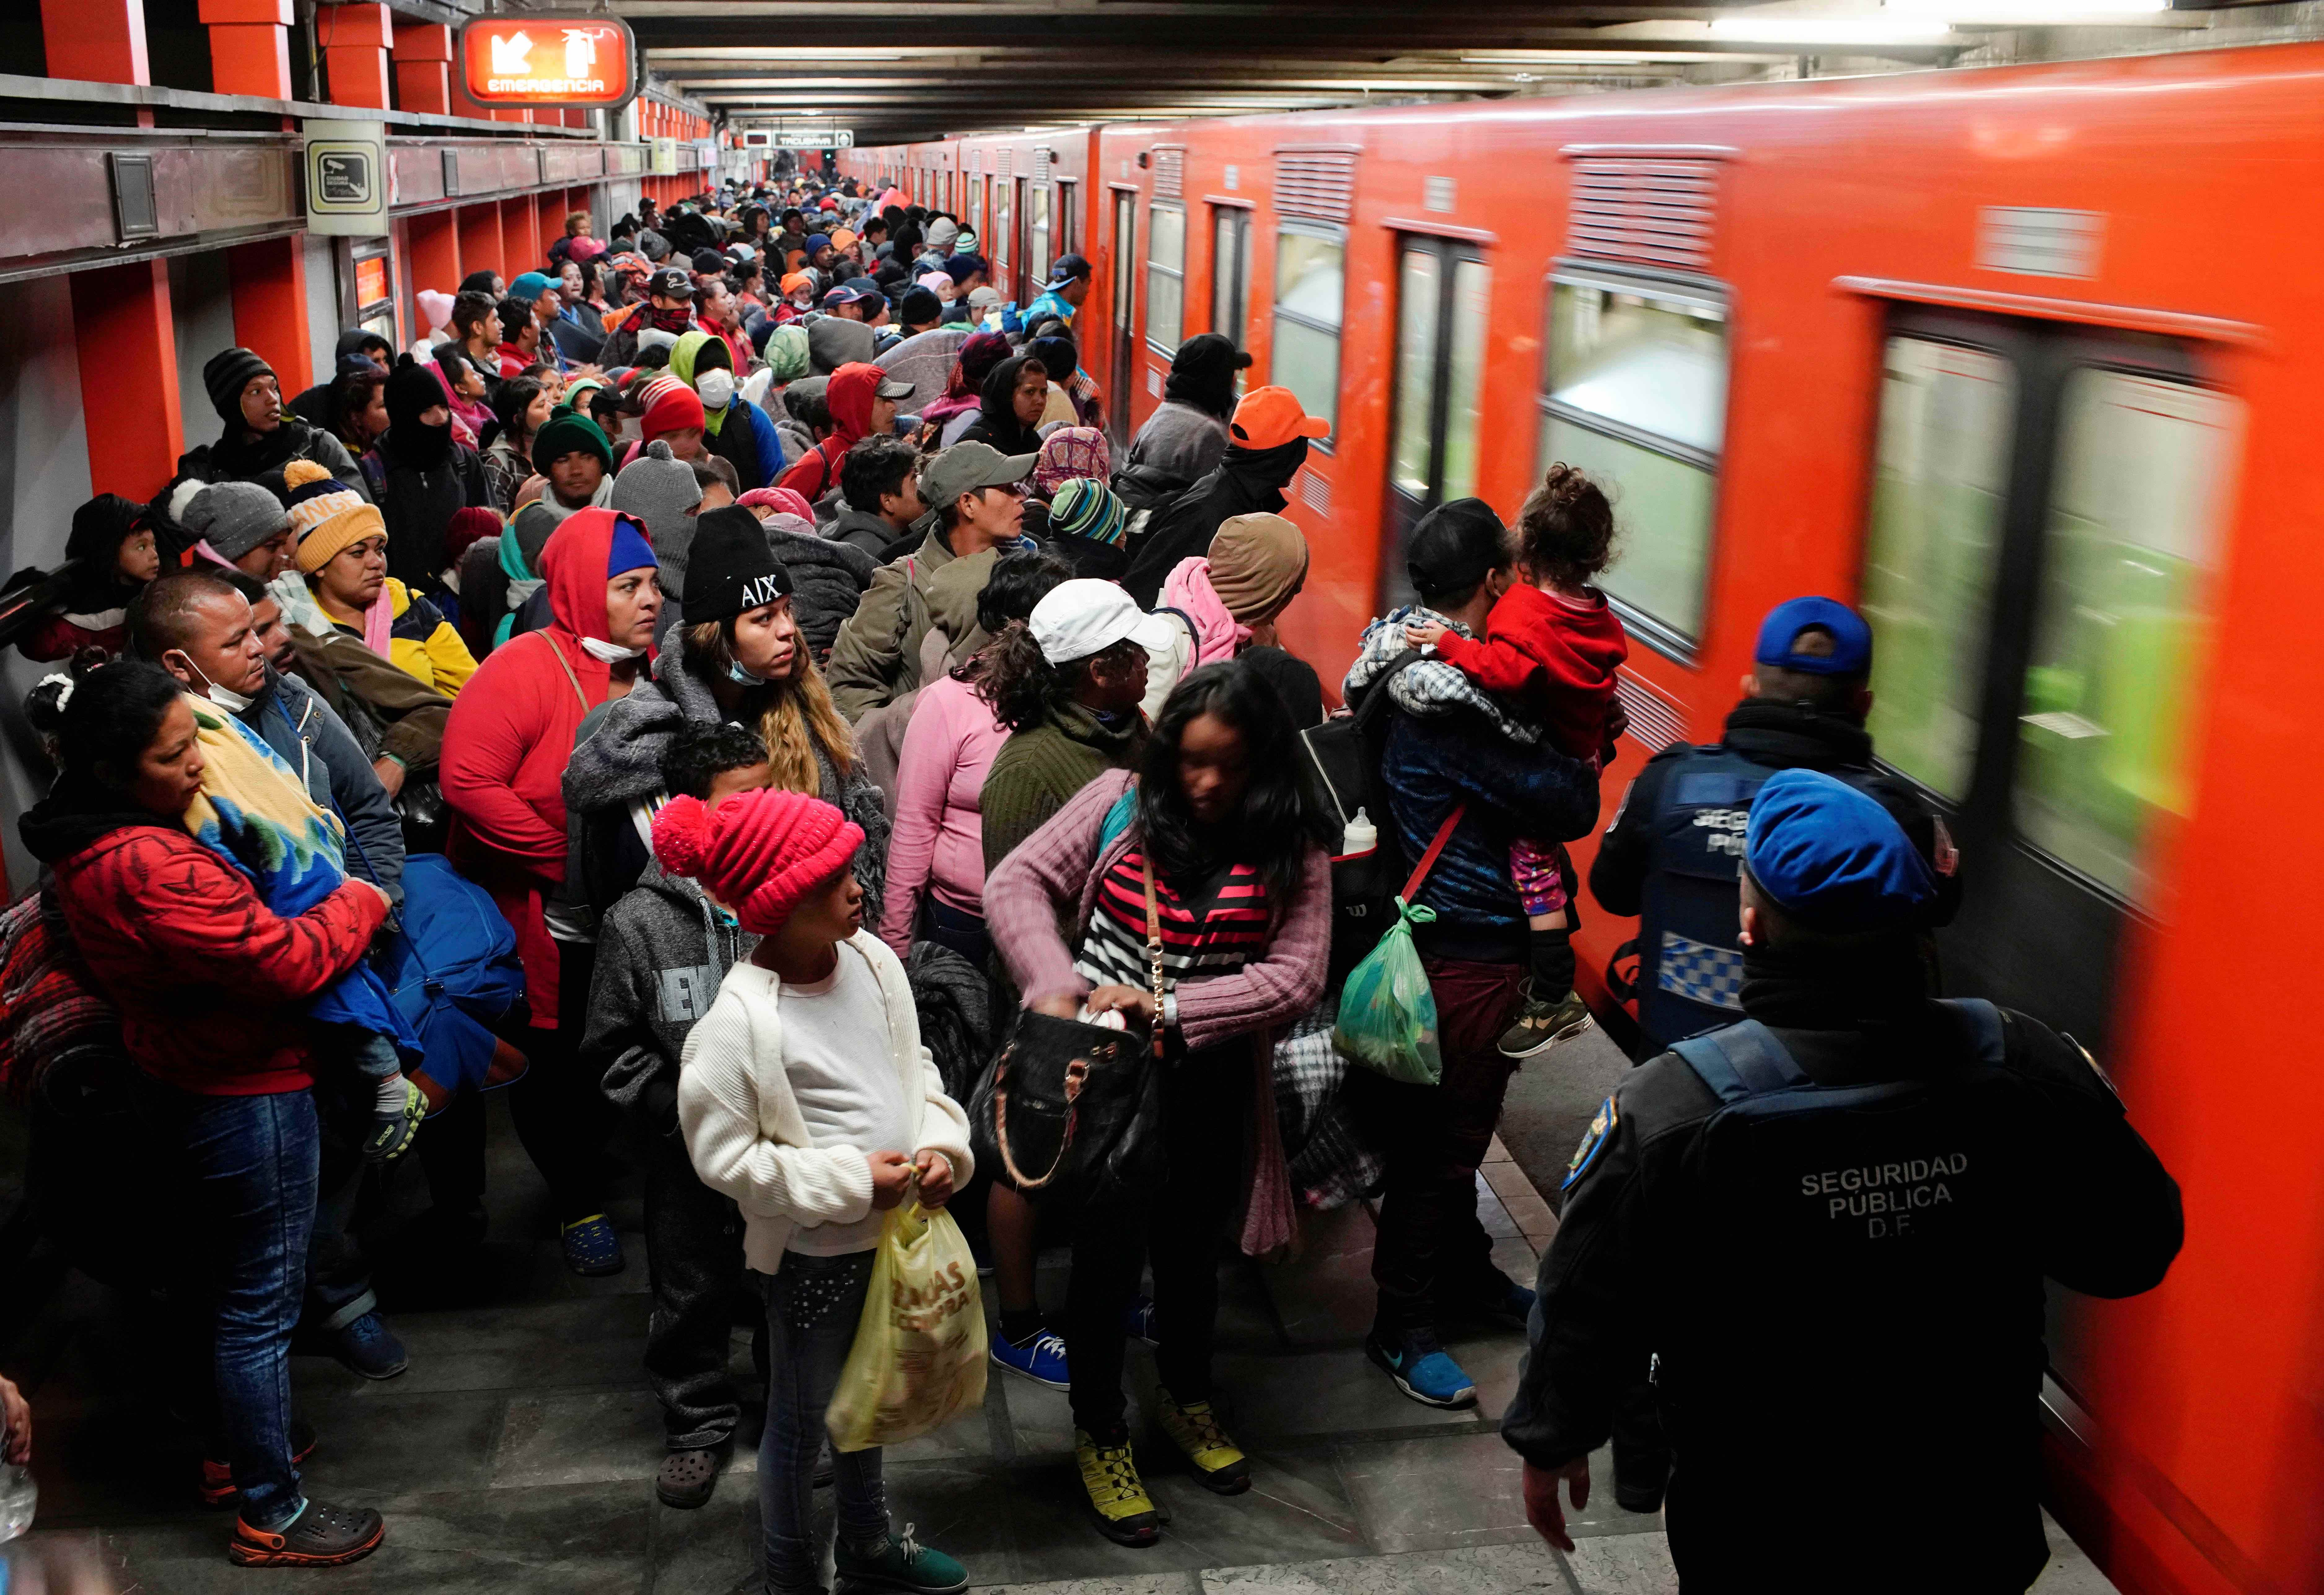 Migrants prepare to get into a train at an underground station during their journey towards the United States, in Mexico City